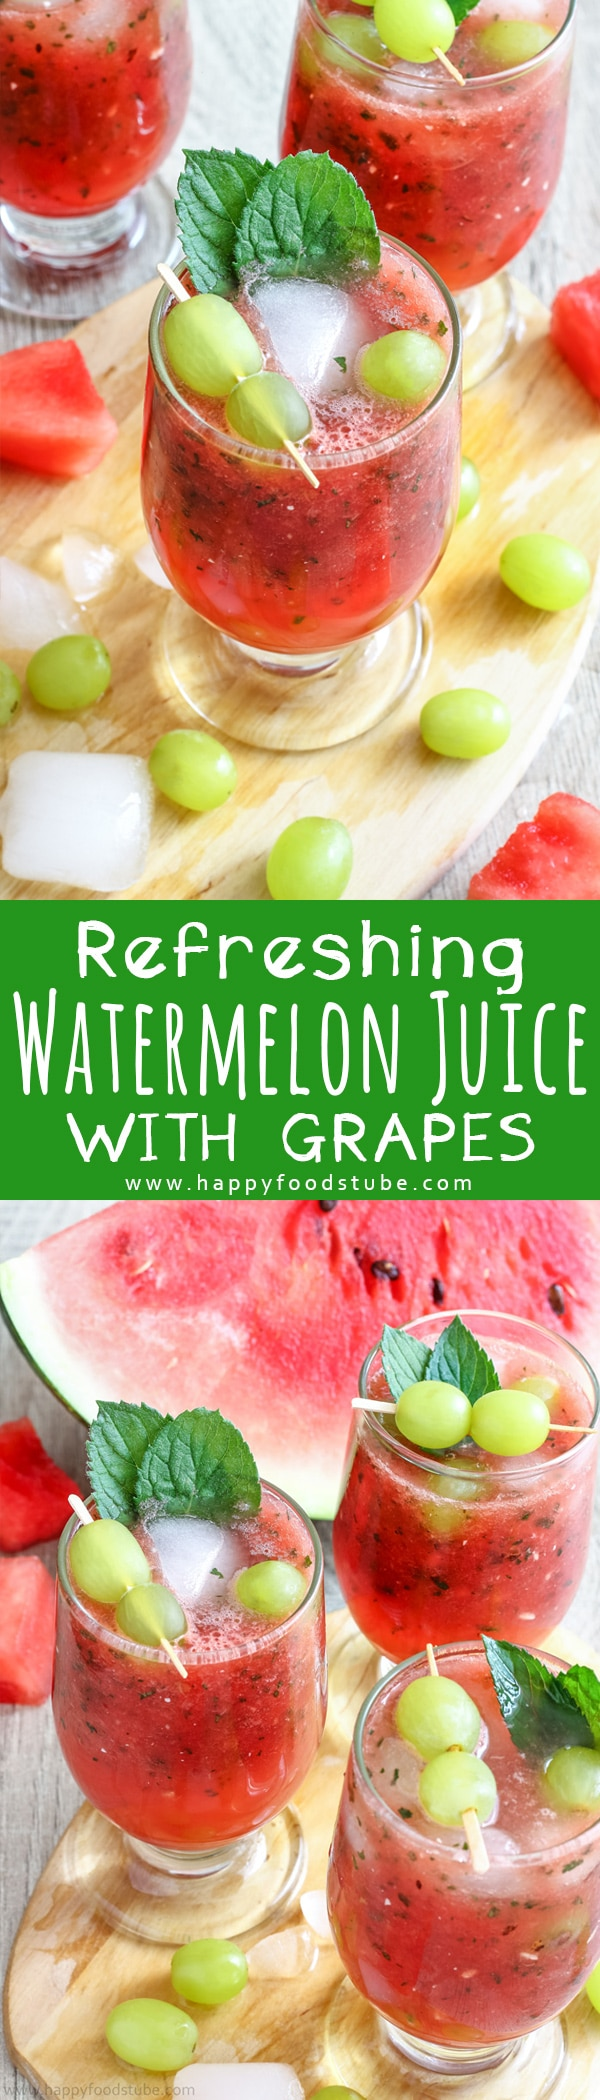 This refreshing watermelon juice with grapes is the best summer drink. Watermelon, mint & honey are combined together and grapes are added for the extra flavor. Non Alcoholic summer drink ready in 10 minutes